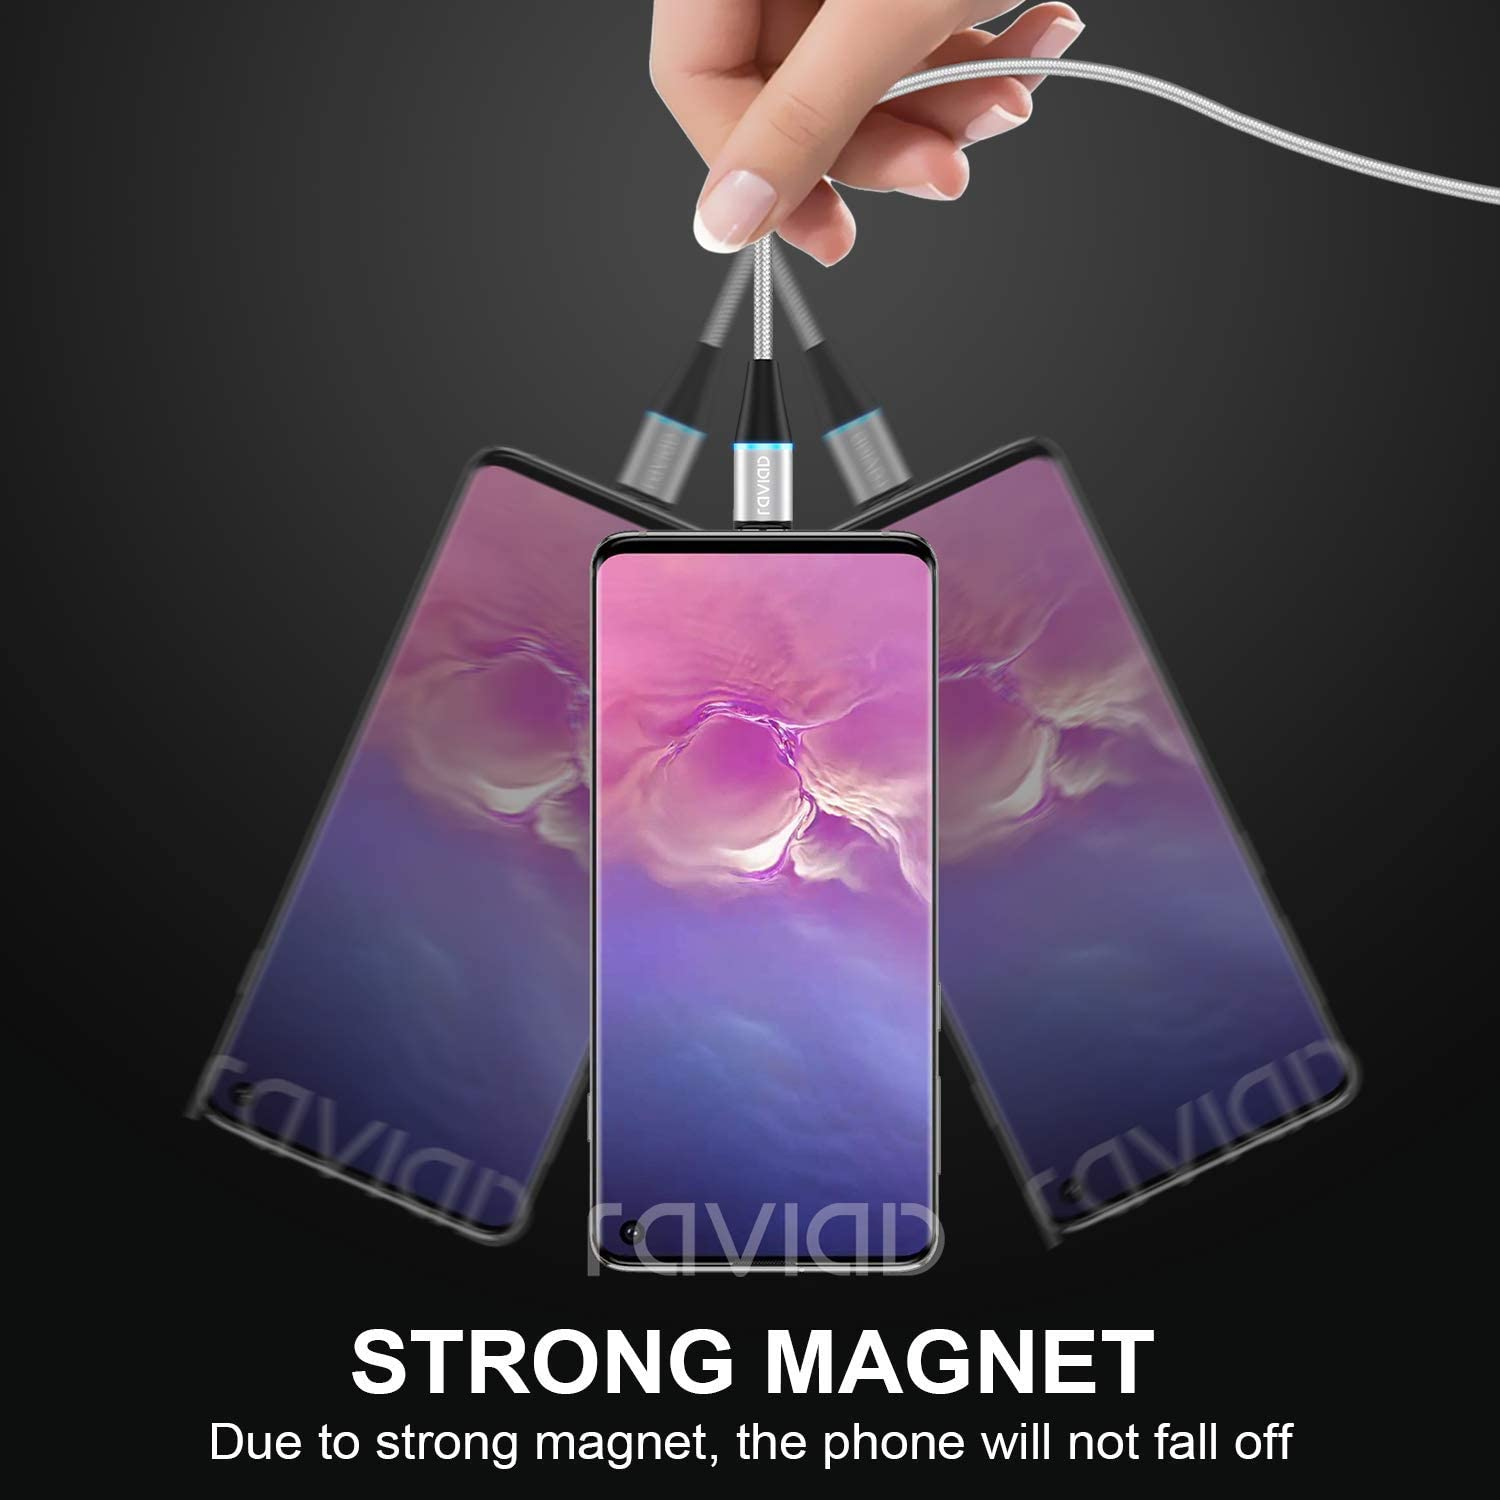 Nylon Magnet USB Kabel Magnetic Datenkabel Fast Charge Sync Schnellladekabel f/ür Micro USB//Type C//Tablets//Phone//Samsung//Huawei//Honor//Xiaomi//Sony//Kindle RAVIAD 3 in 1 Magnetisch Ladekabel